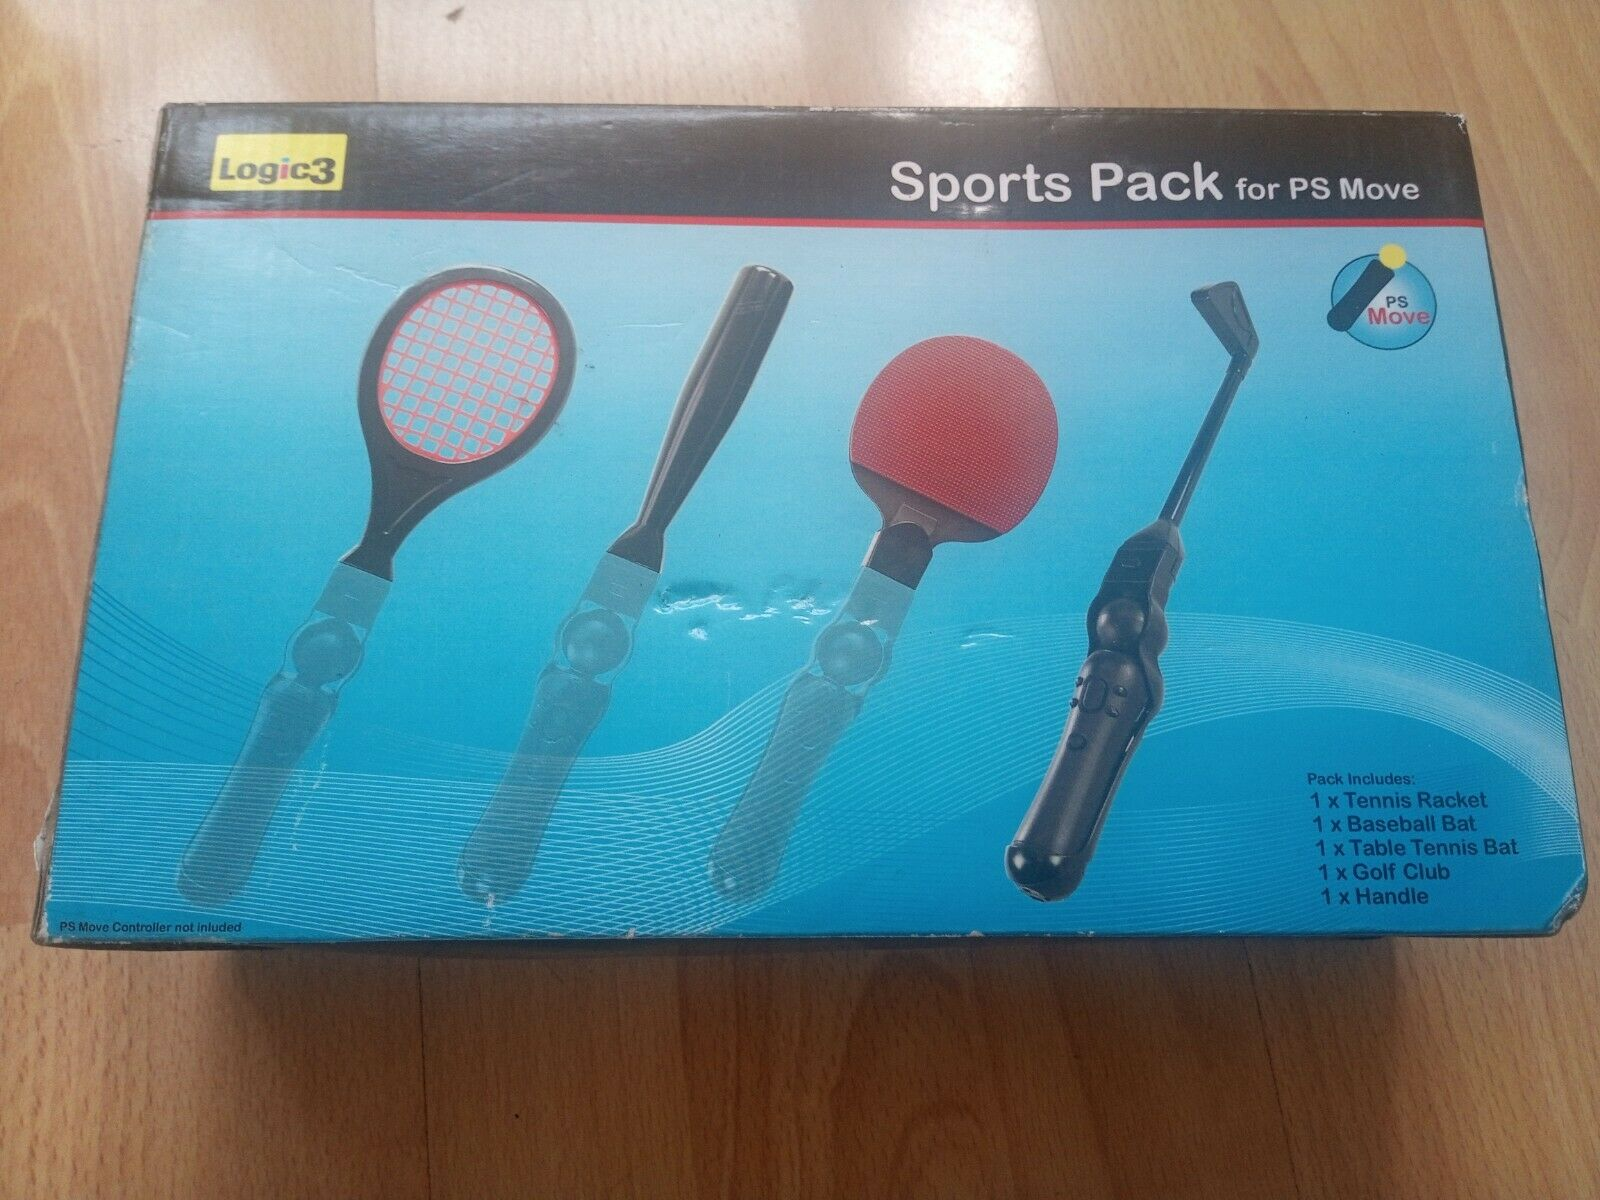 PS Move Sports Pack for PlayStation Move Controllers Accessory Pack